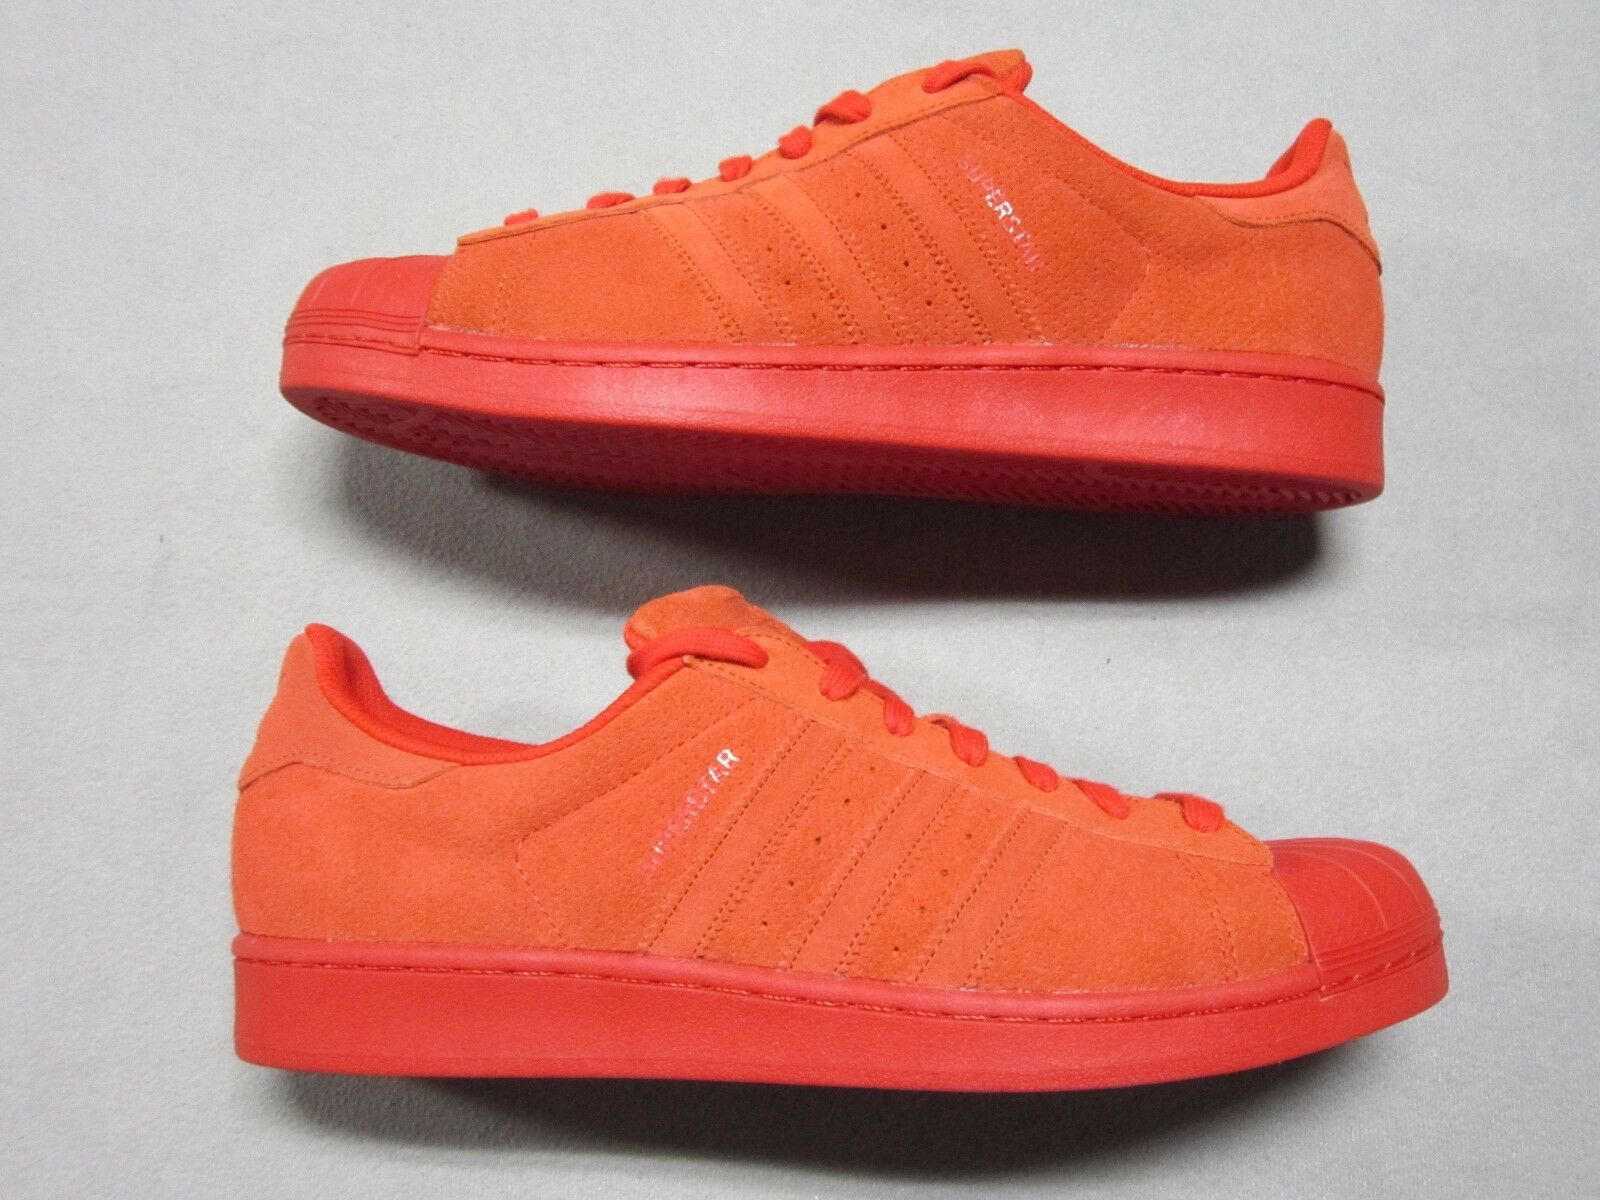 ADIDAS ORIGINAL SUPERSTAR MONO PERF ALL RED SNEAKERS S79475 SHOES SIZE 13 NEW S79475 SNEAKERS af82e8